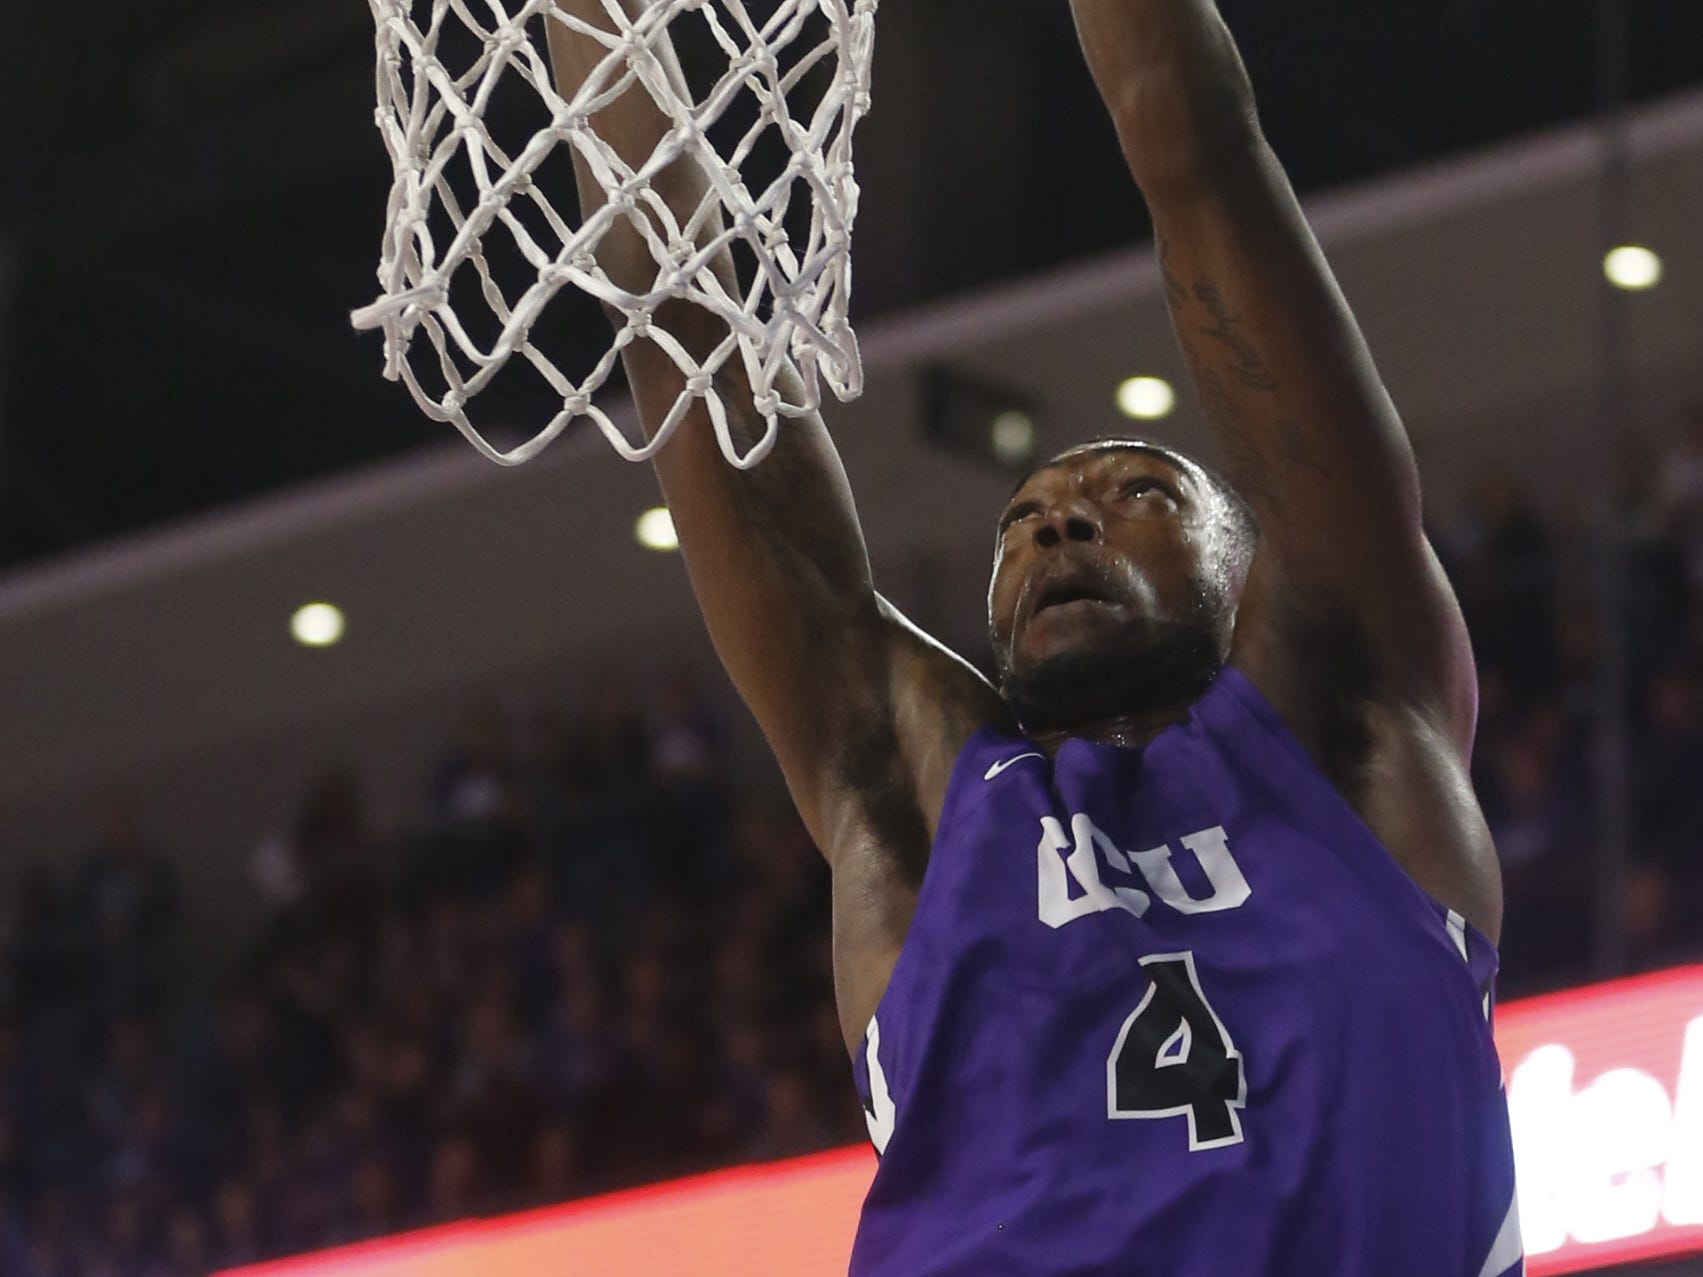 GCU's Oscar Frayer (4) dunks against New Mexico State during the first half at Grand Canyon University Arena in Phoenix, Ariz. on February 9, 2019.